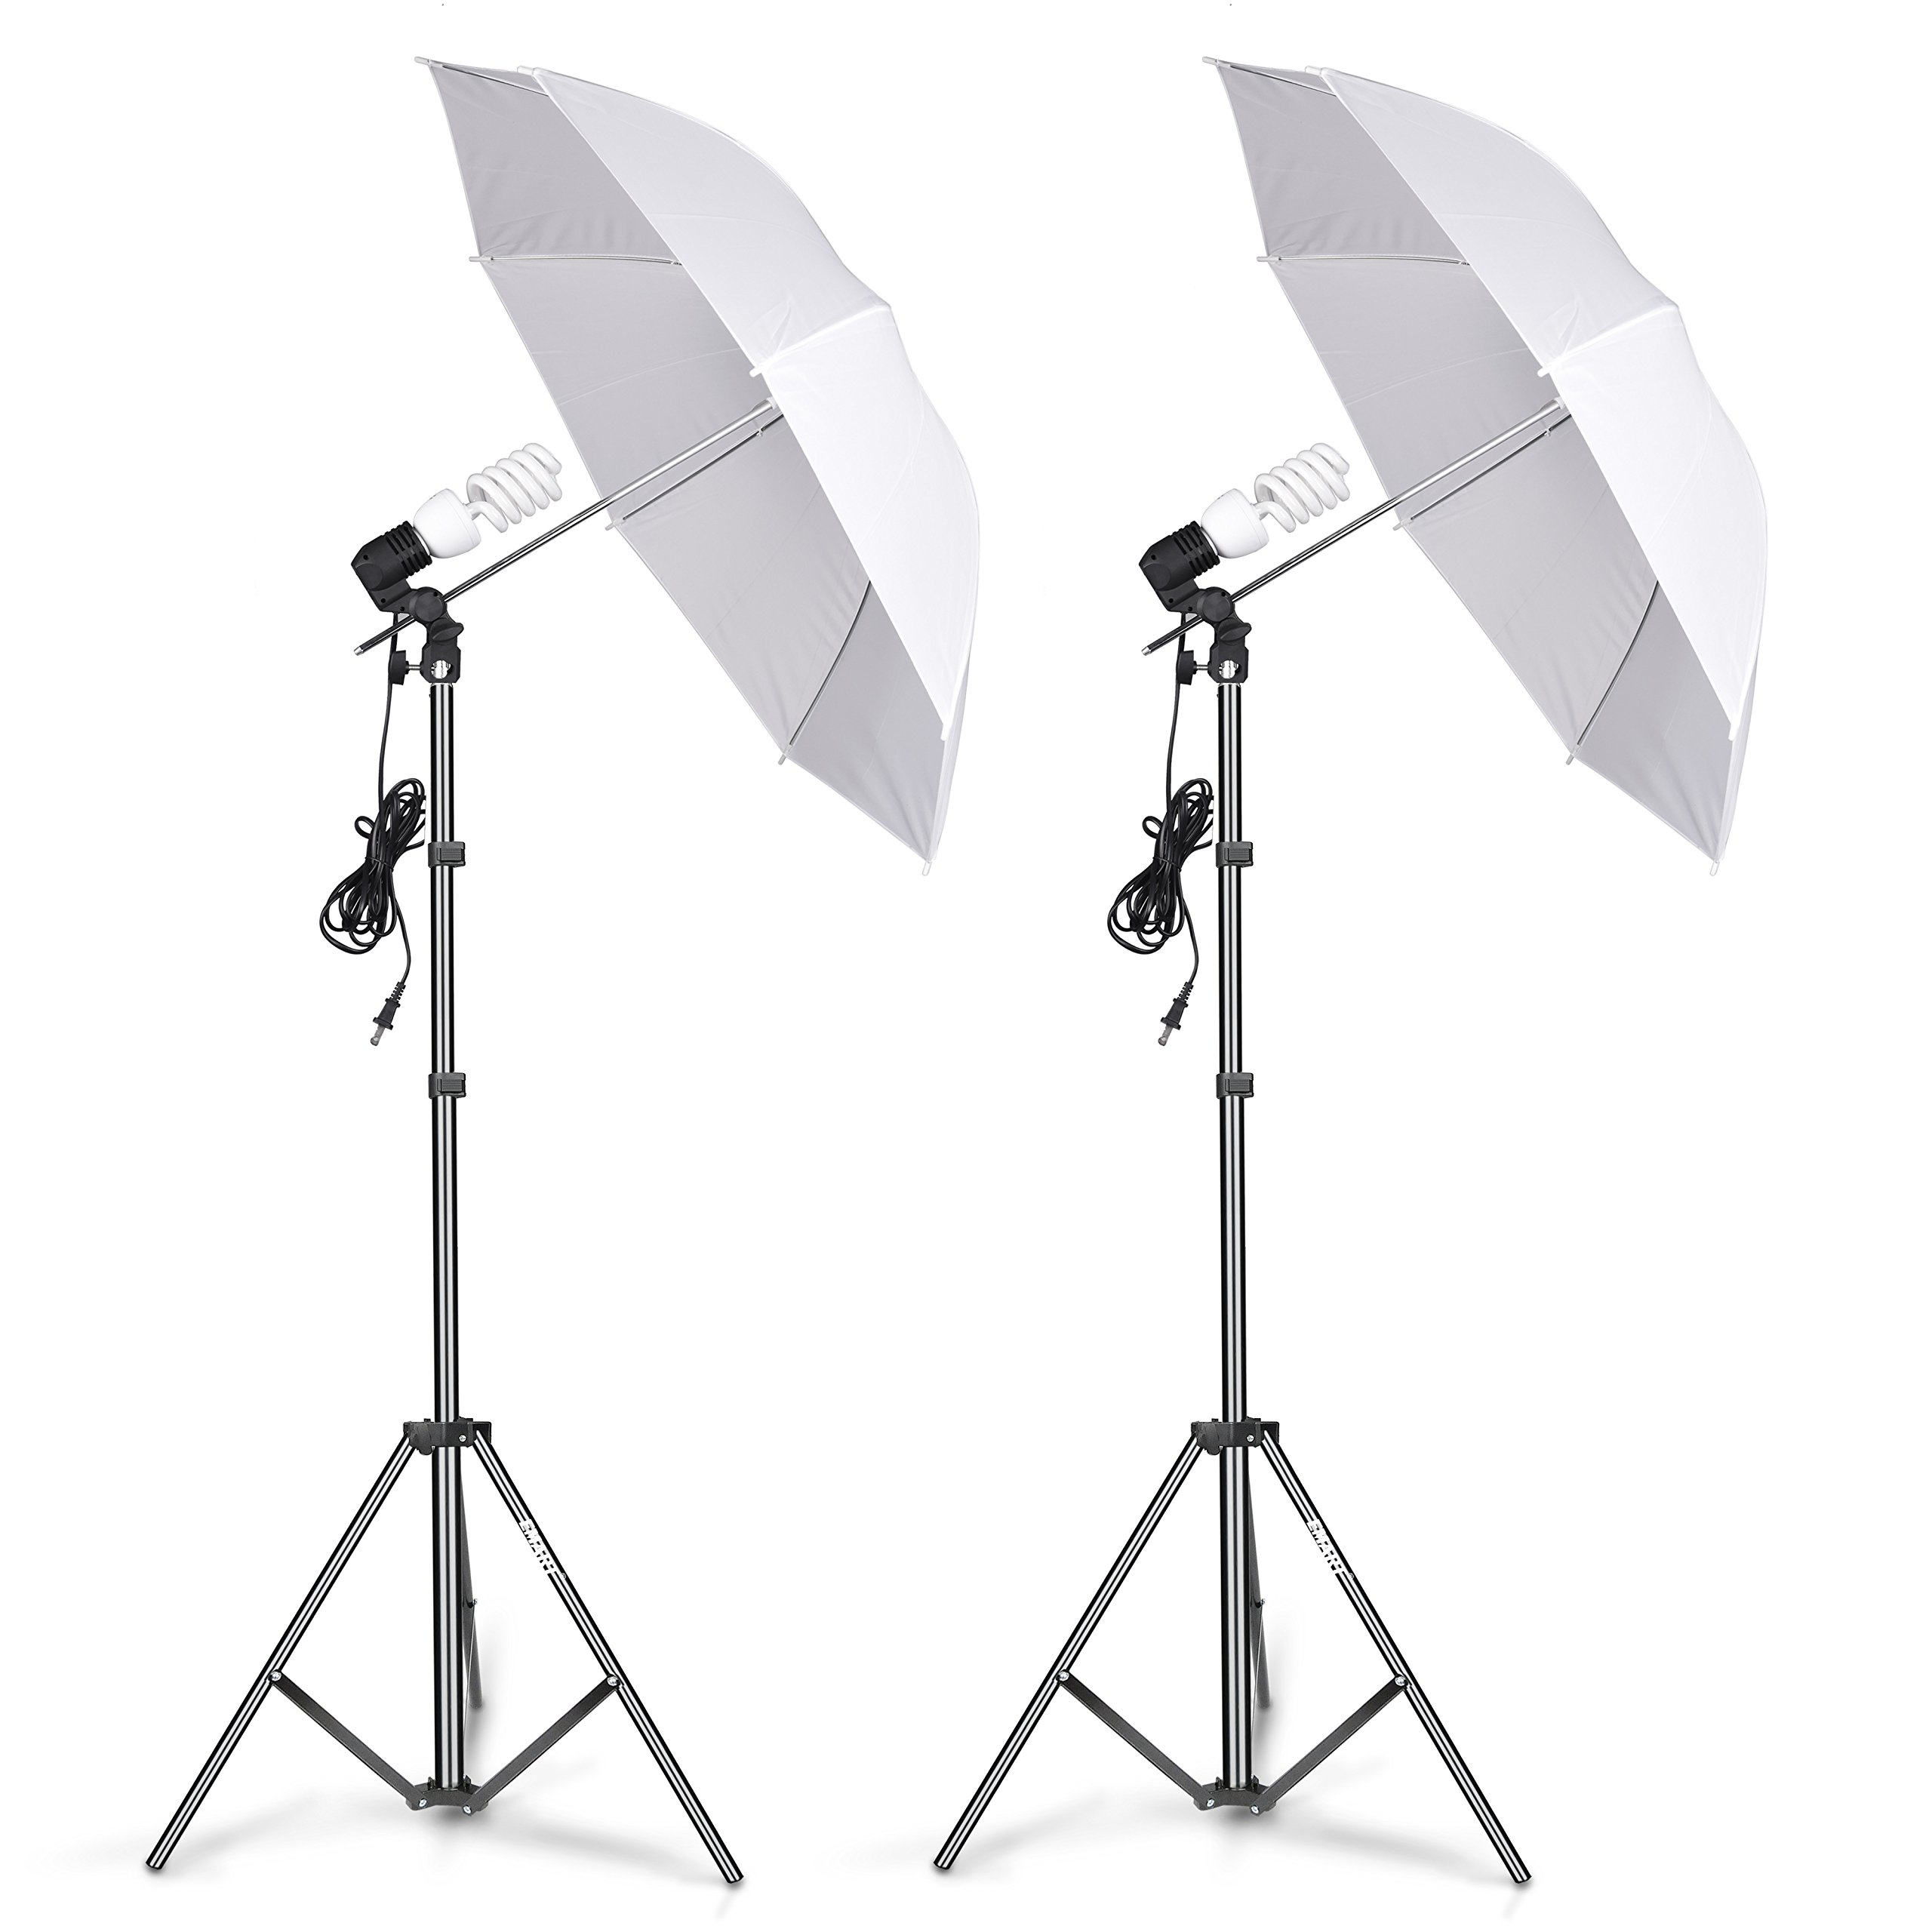 Emart Photography Umbrella Lighting Kit, 400W 5500K Photo Portrait Continuous Reflector Lights for Camera Video Studio Shooting Daylight